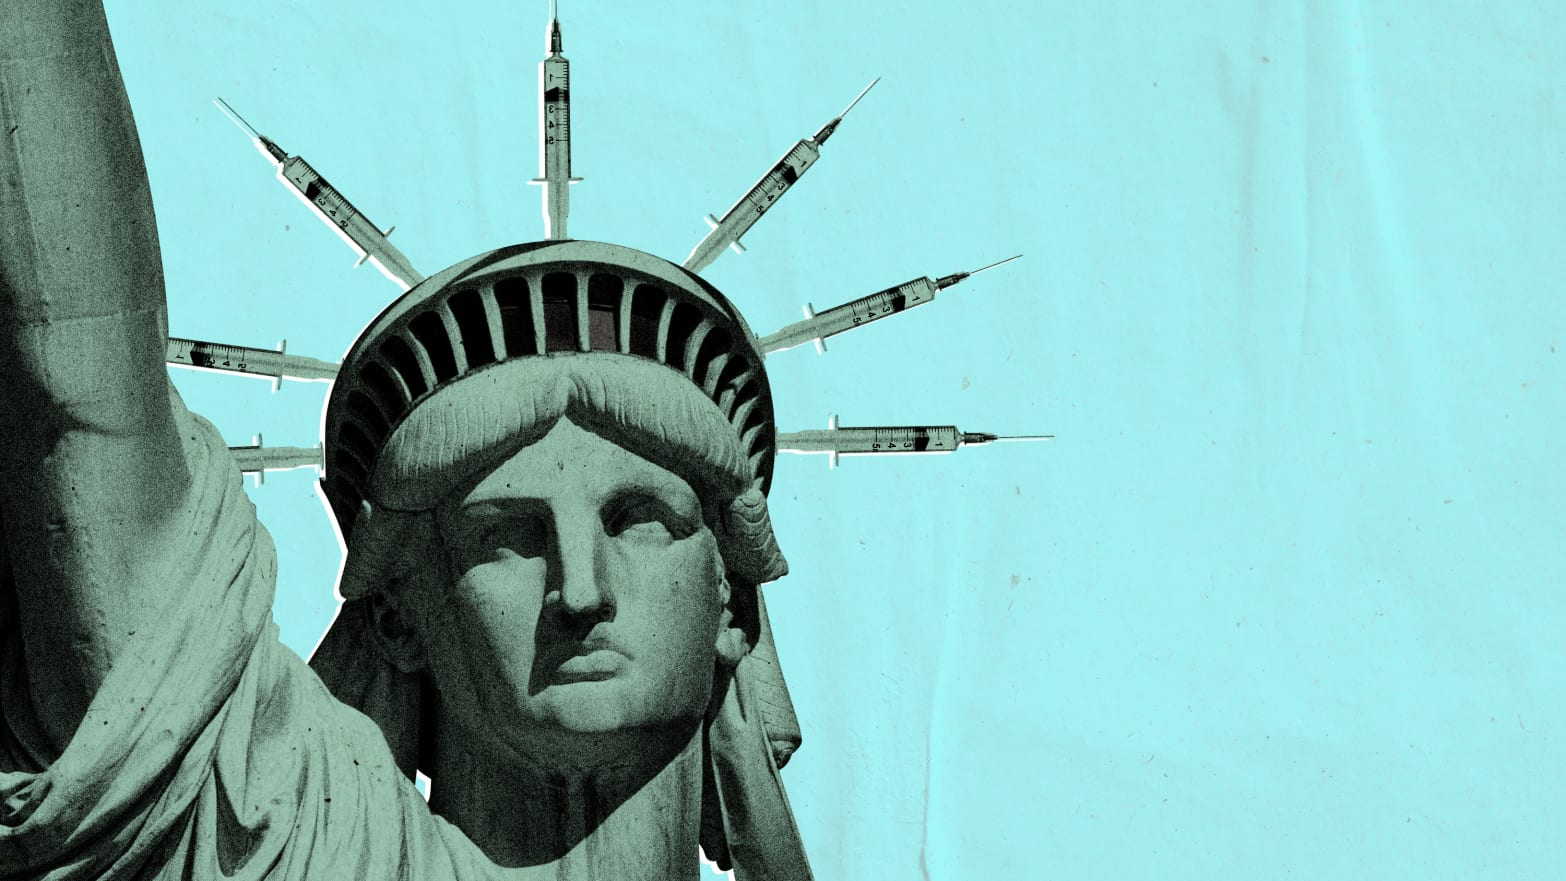 illustration of statue of liberty on pale blue background but instead of spires on crown wearing needles vaccine vaccination antivax anti vaccination orthodox hasidic jew jewish brooklyn williamsburg bill deblasio measles crisis